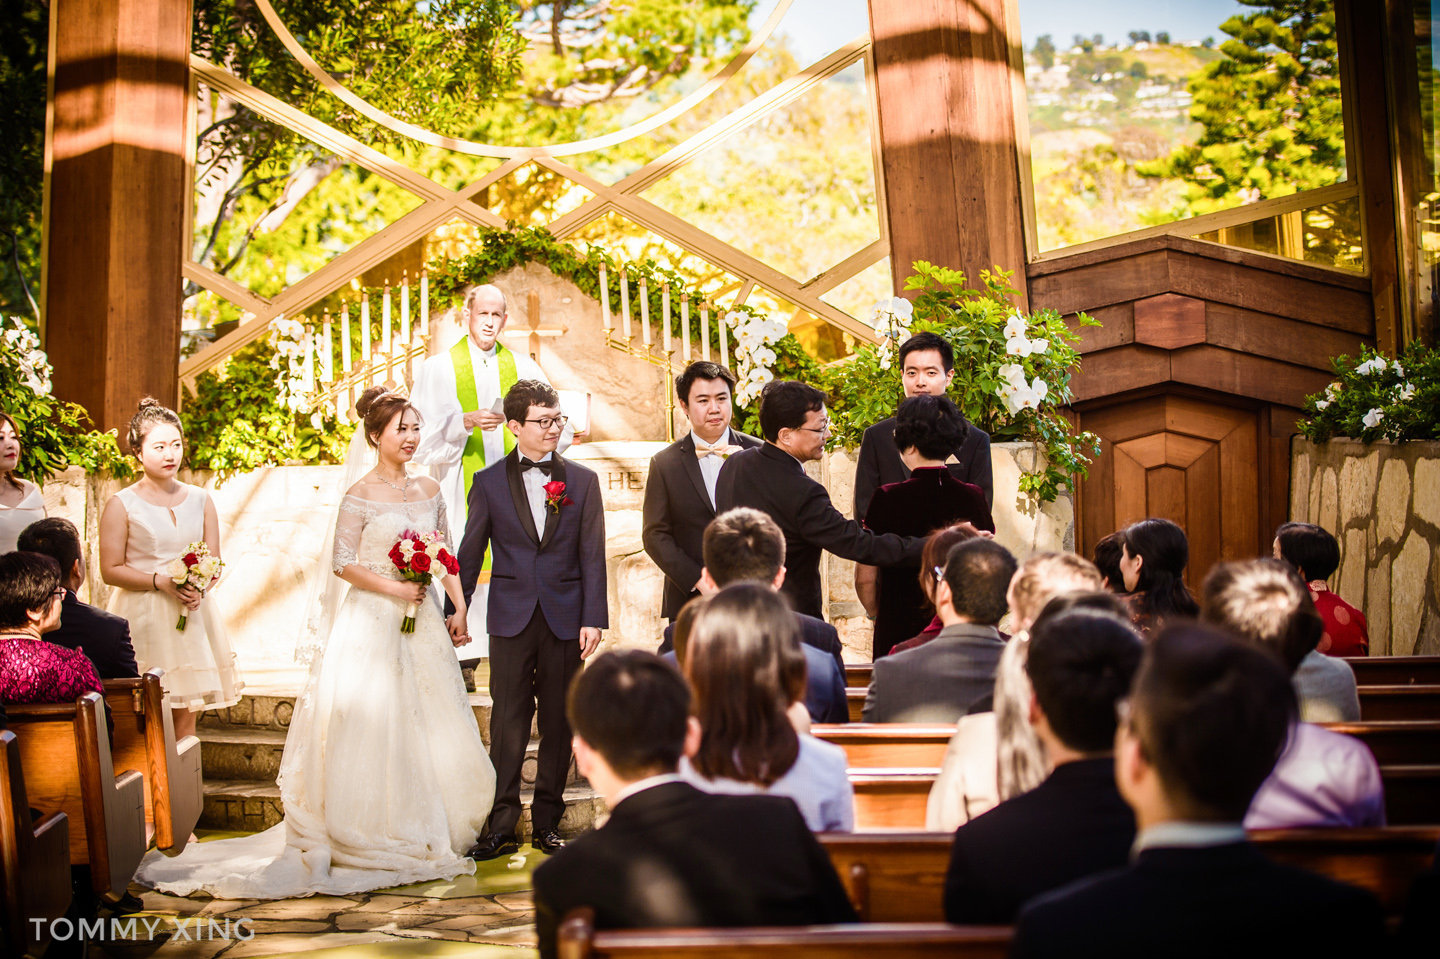 Los Angeles Wedding Photographer 洛杉矶婚礼婚纱摄影师 Tommy Xing-127.JPG